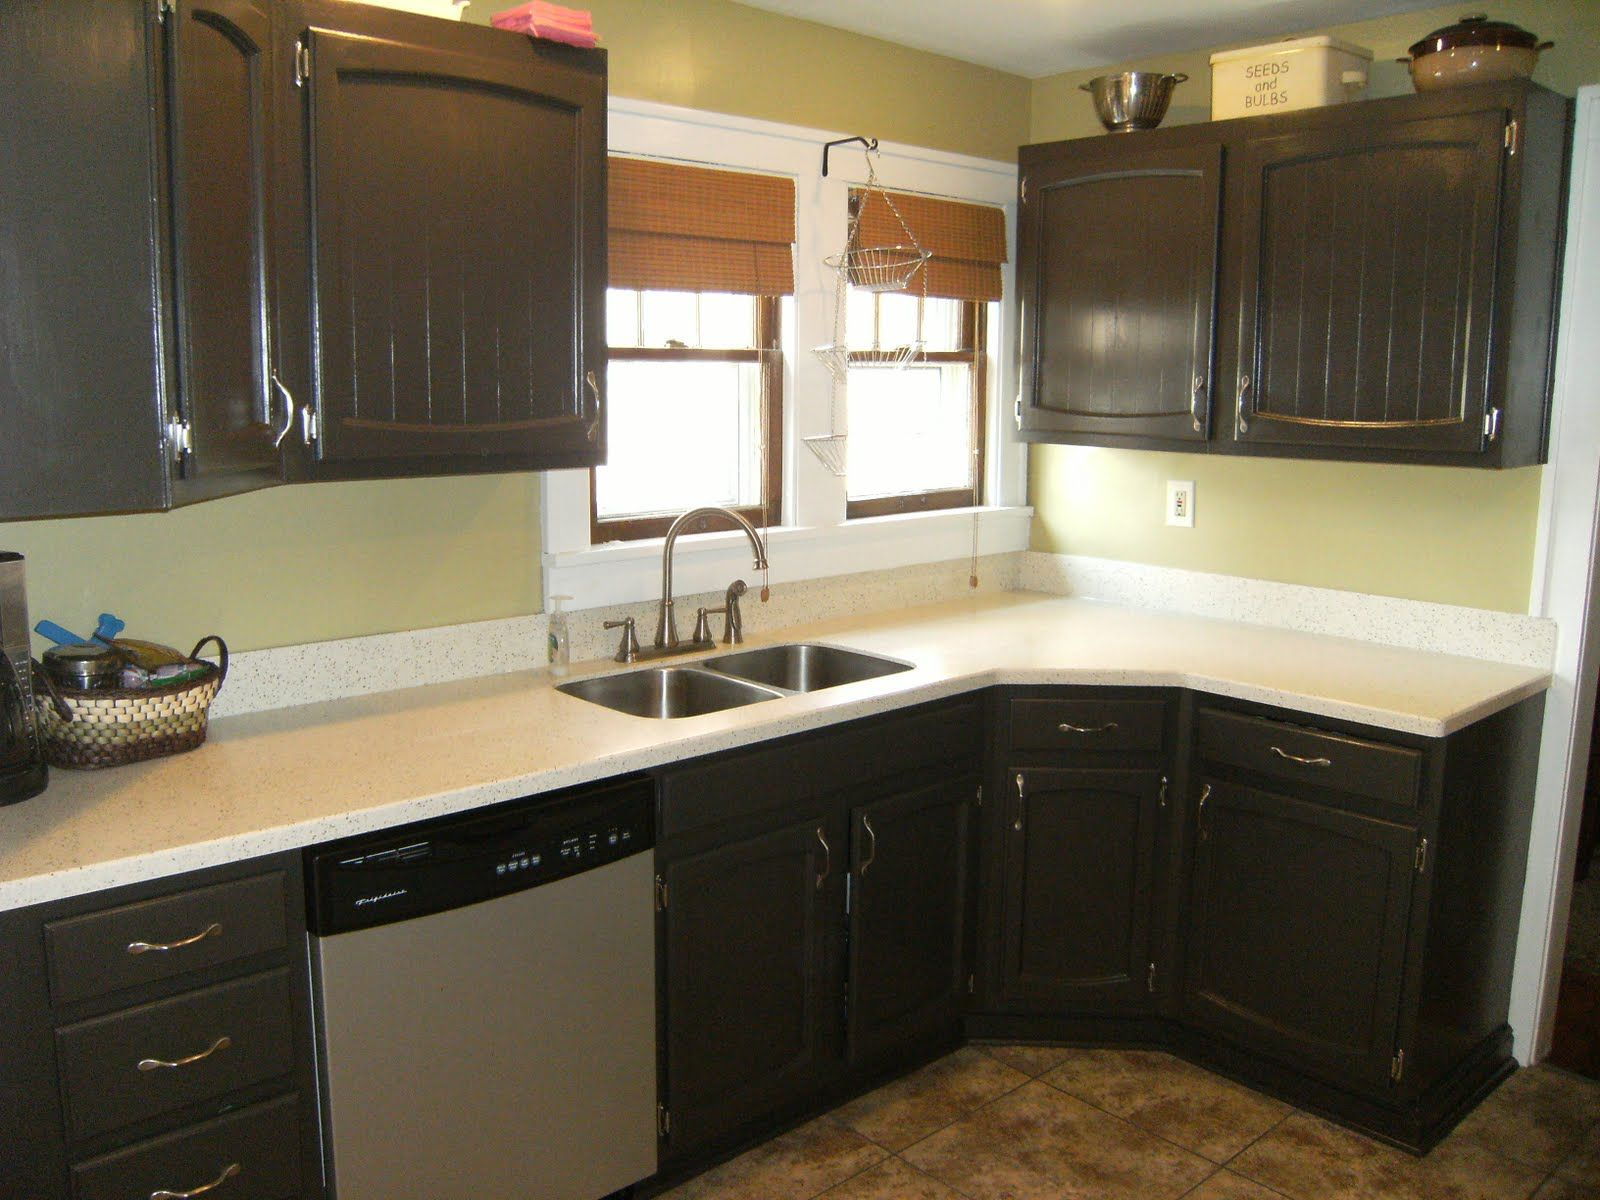 painted kitchen cabinets projects house tips painting kitchen